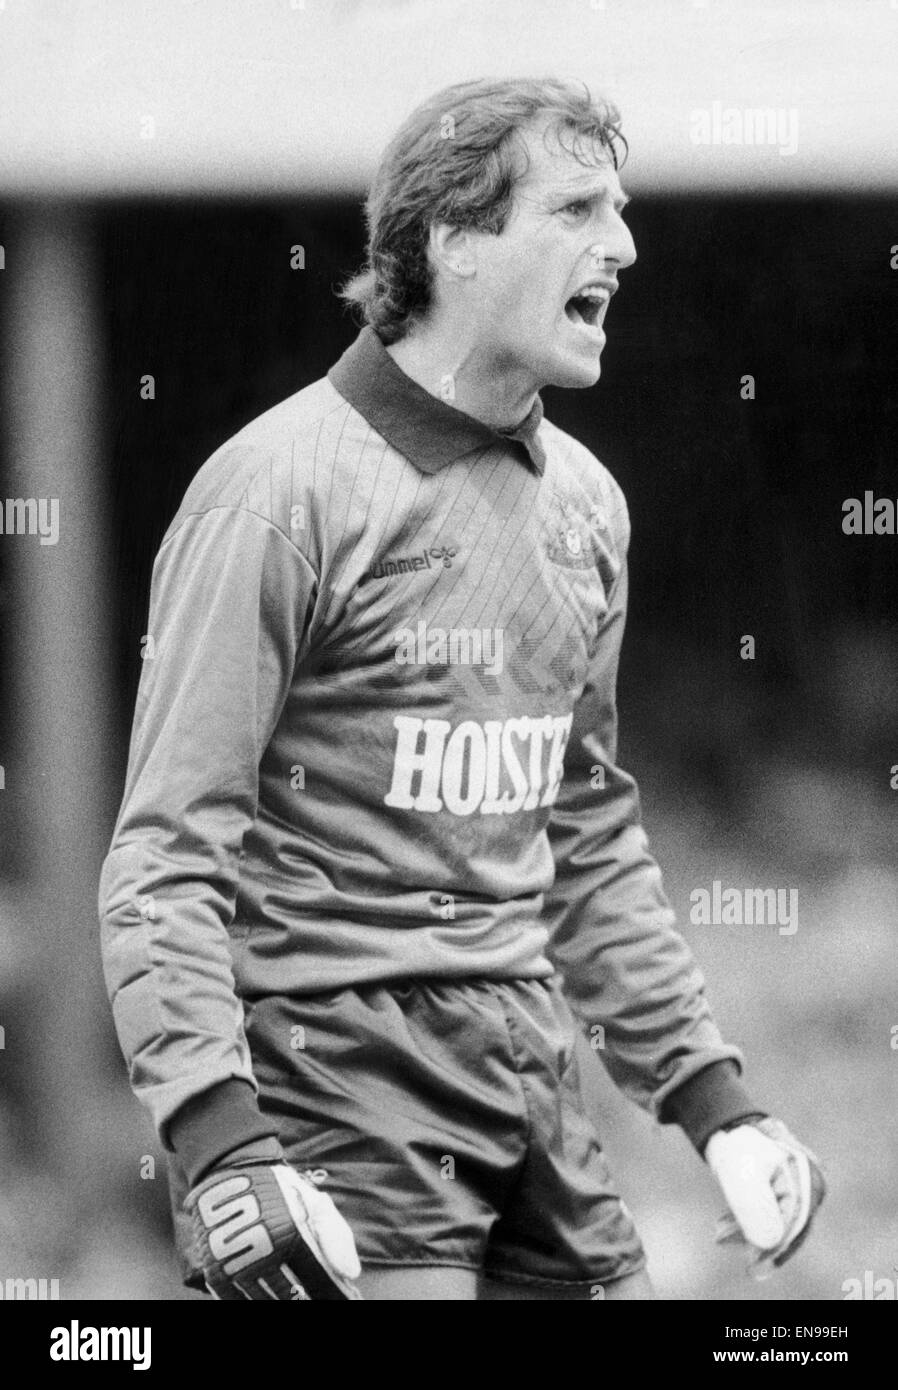 03e17532d70 Tottenham Hotspur goalkeeper Ray Clemence in action, circa December 1986. -  Stock Image